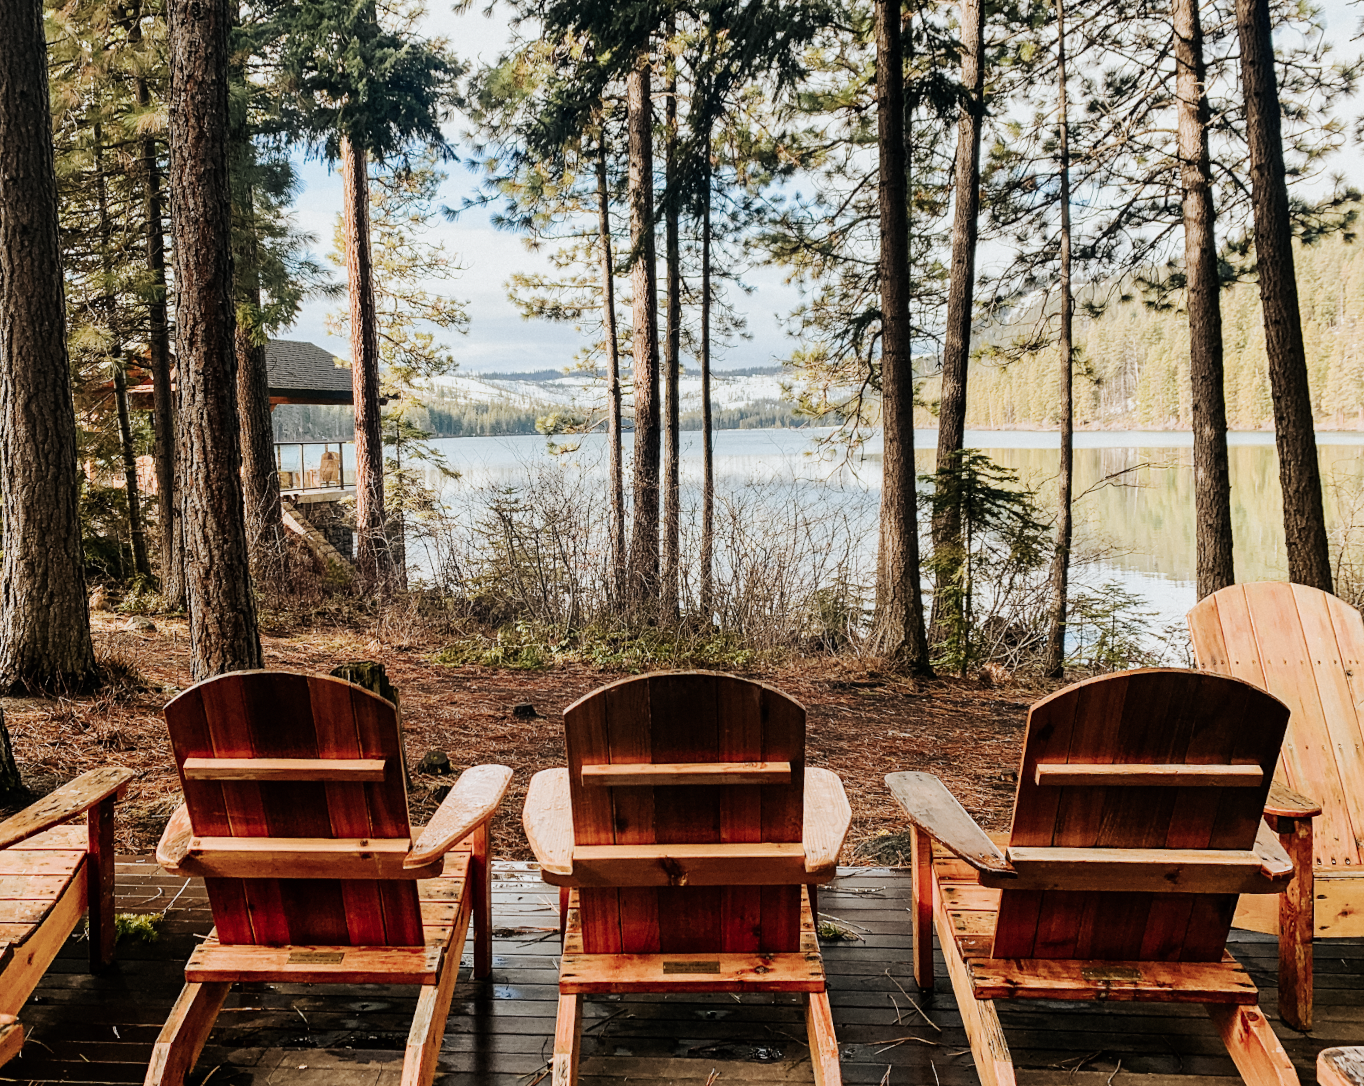 3 redwood chairs are perched in front of redwood trees along suttle lake